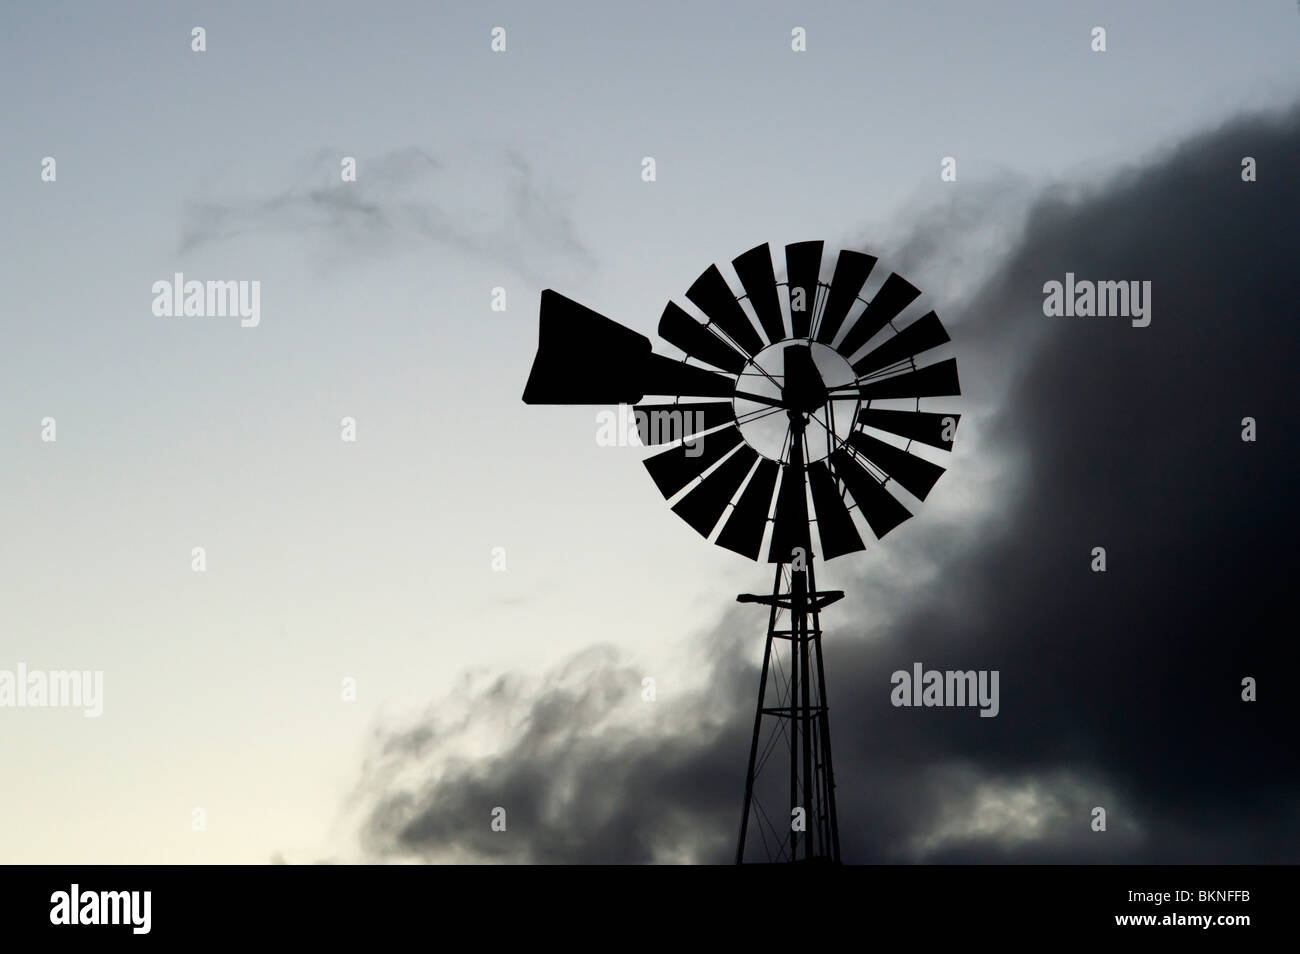 Windmill silhouetted against clouds - Stock Image